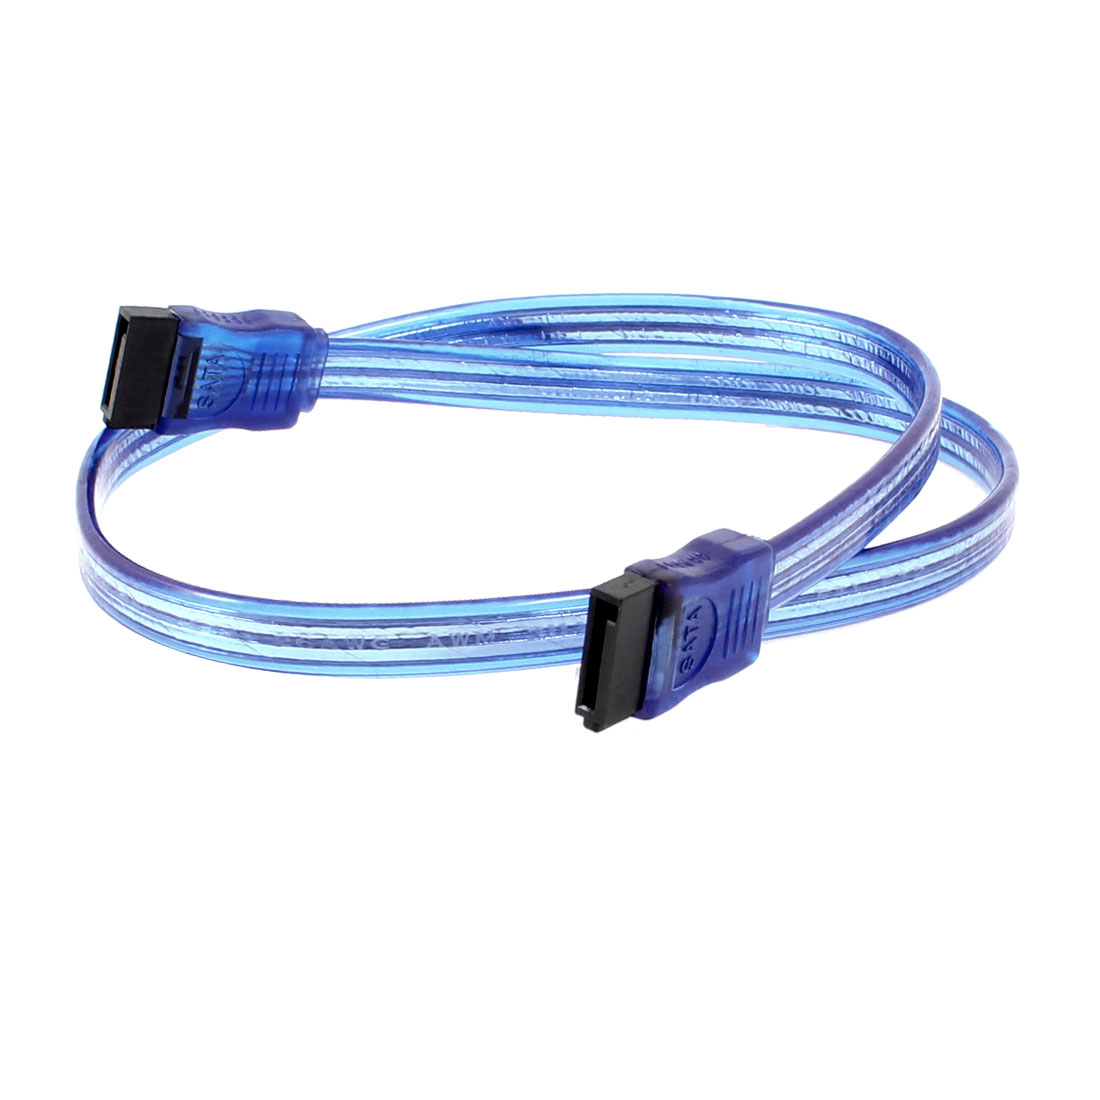 Straight SATA 7 Pin Female to 7 Pin Female HDD Data Cable Adapter Lead Blue